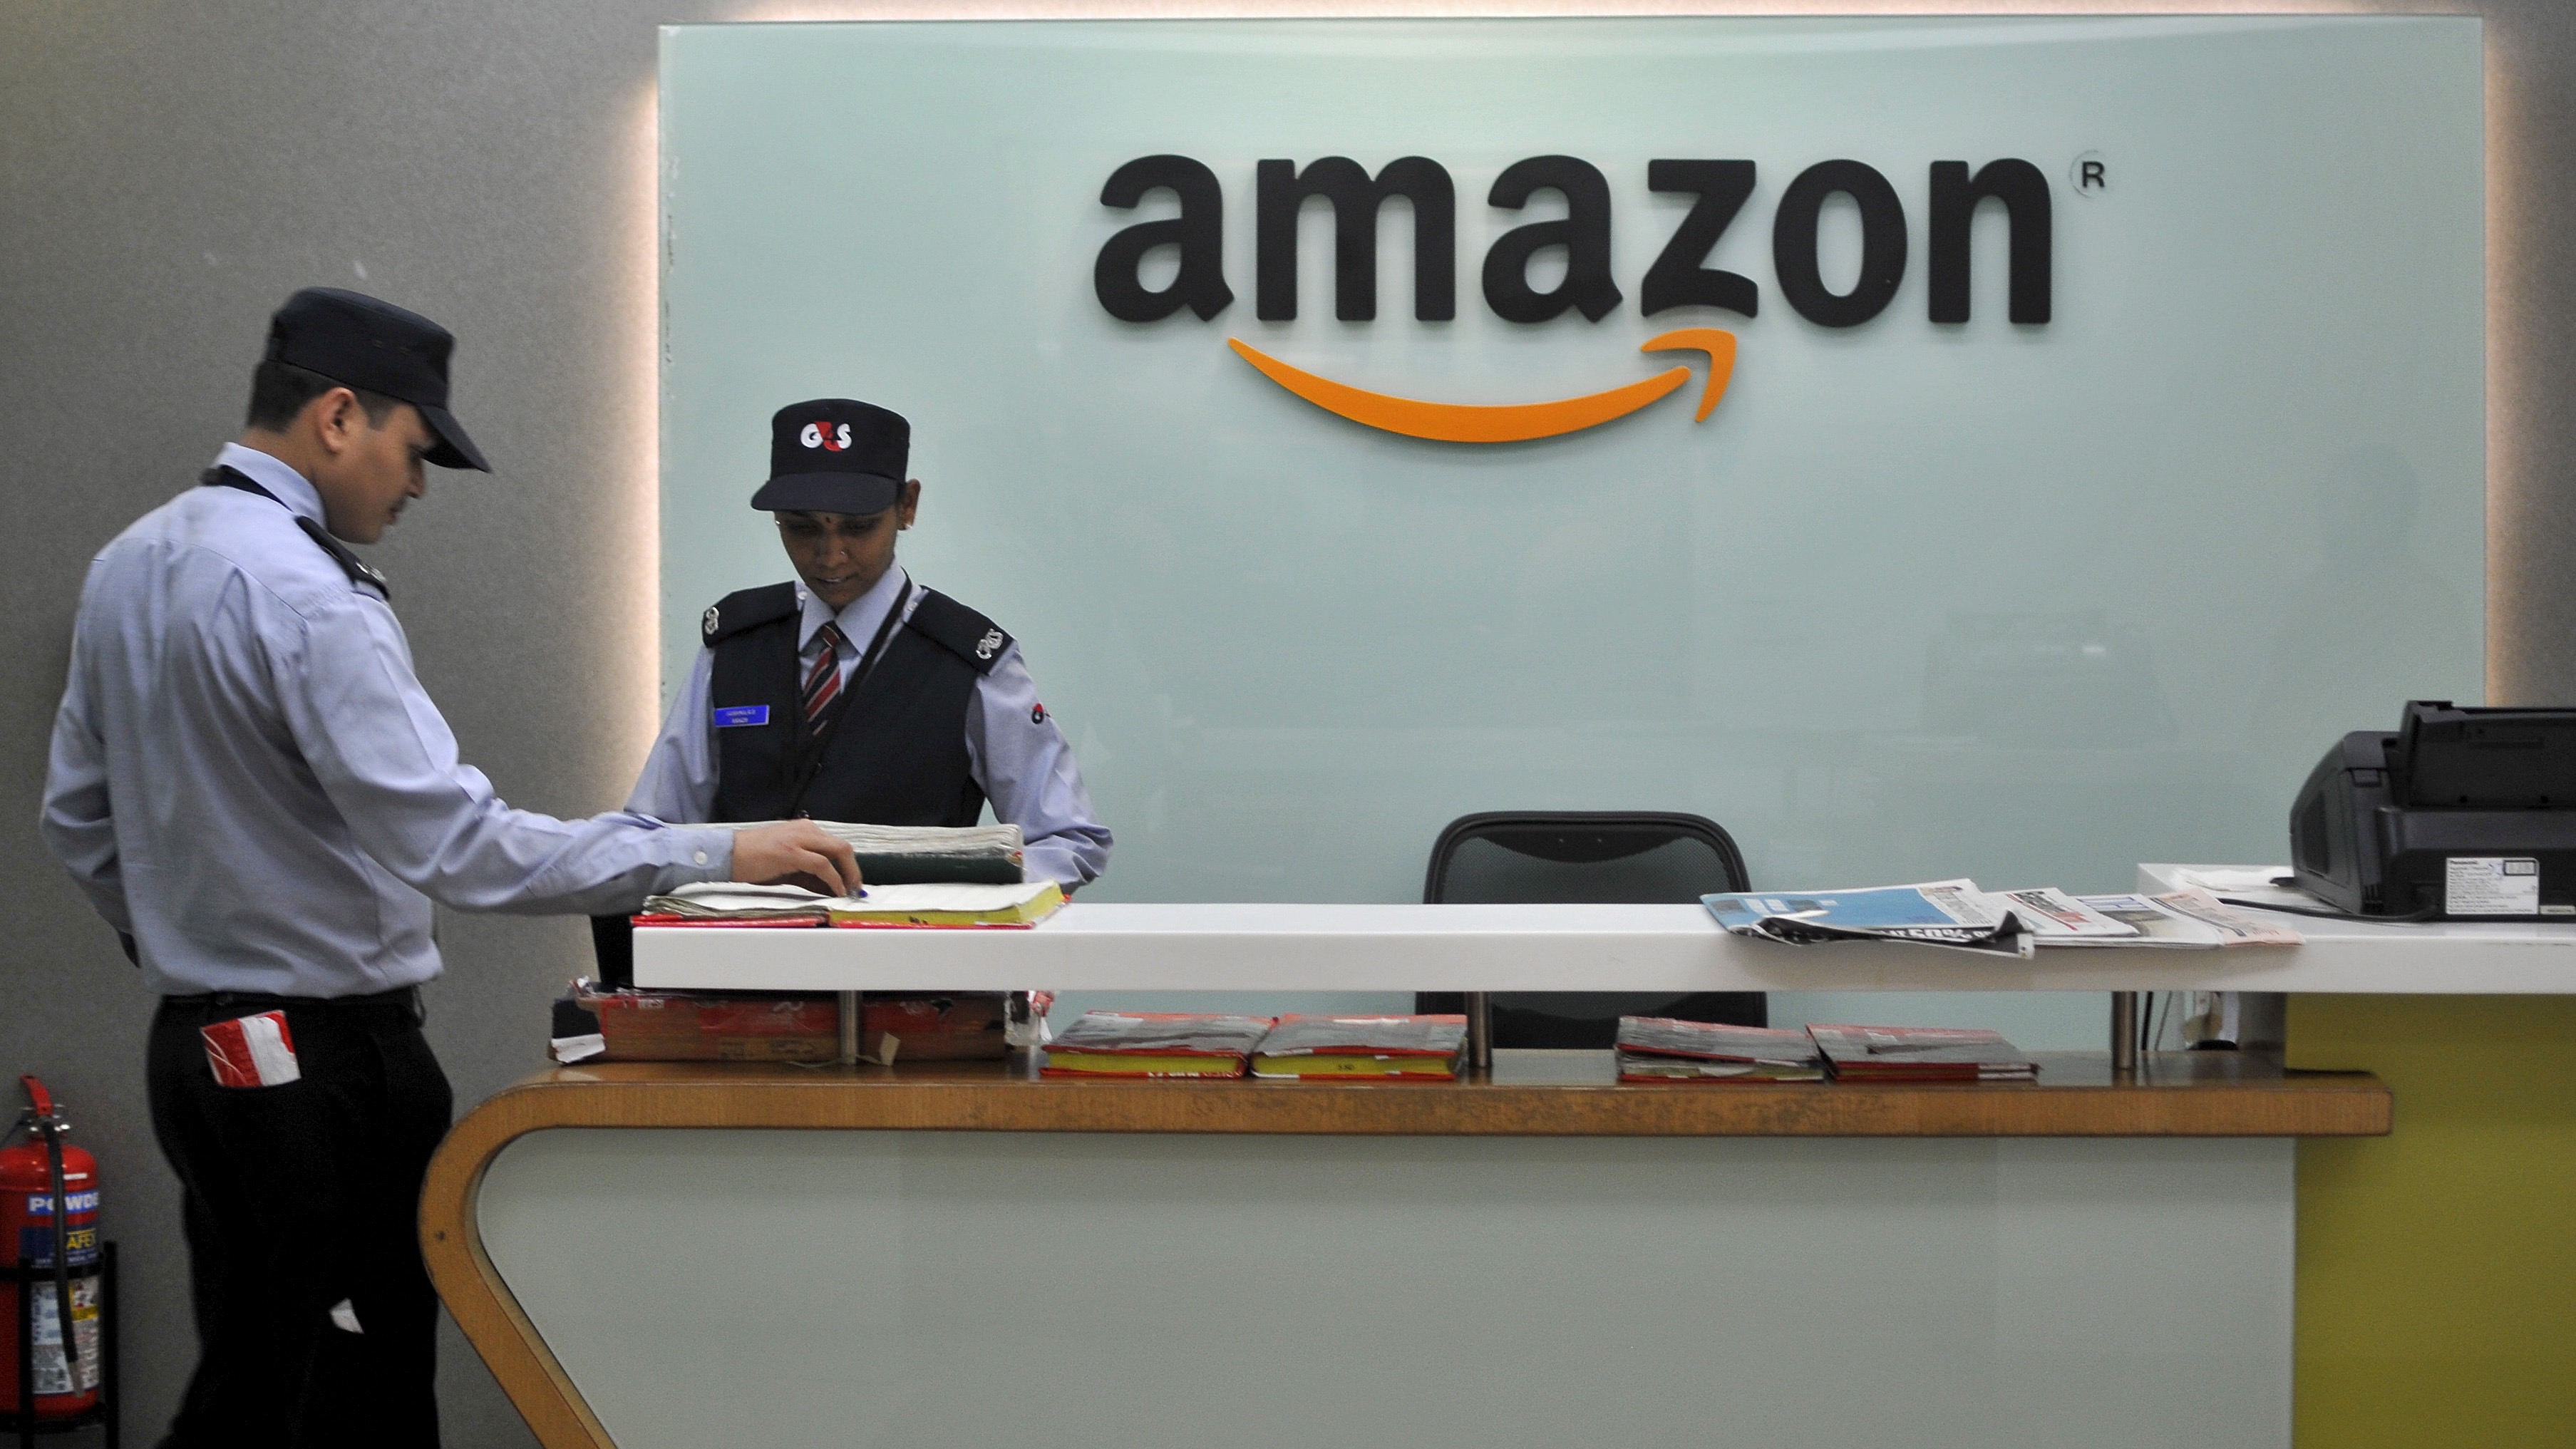 Security guards stand at the reception desk of the Amazon India office in Bengaluru, India, August 14, 2015. E-commerce giant Amazon.com is taking lessons learnt from its daily battles with India's choked roads and cramped cities to some of its largest developed markets, exporting a model of cheaper deliveries and reduced warehousing costs. Picture taken August 14, 2015. To match AMAZON.COM-INDIA/LOGISTICS REUTERS/Abhishek N. Chinnappa - RTS6Q3P